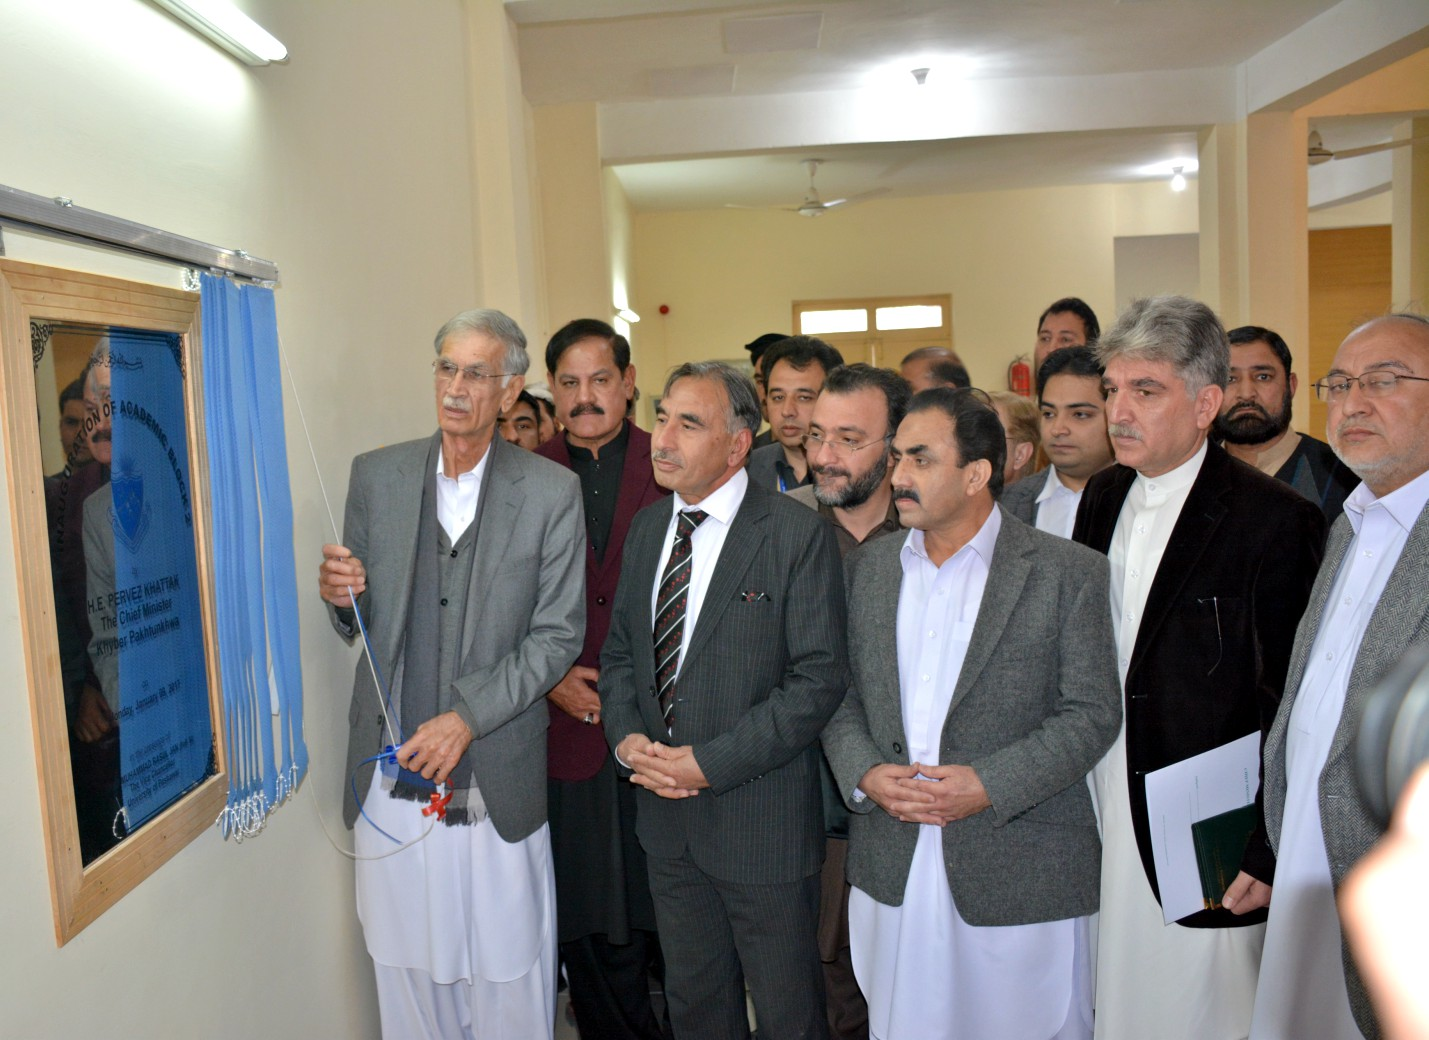 Chief Minister Khyber Pukhtunkhwa Mr. Pervez Khattak Inaugurating Academic Block at UoP